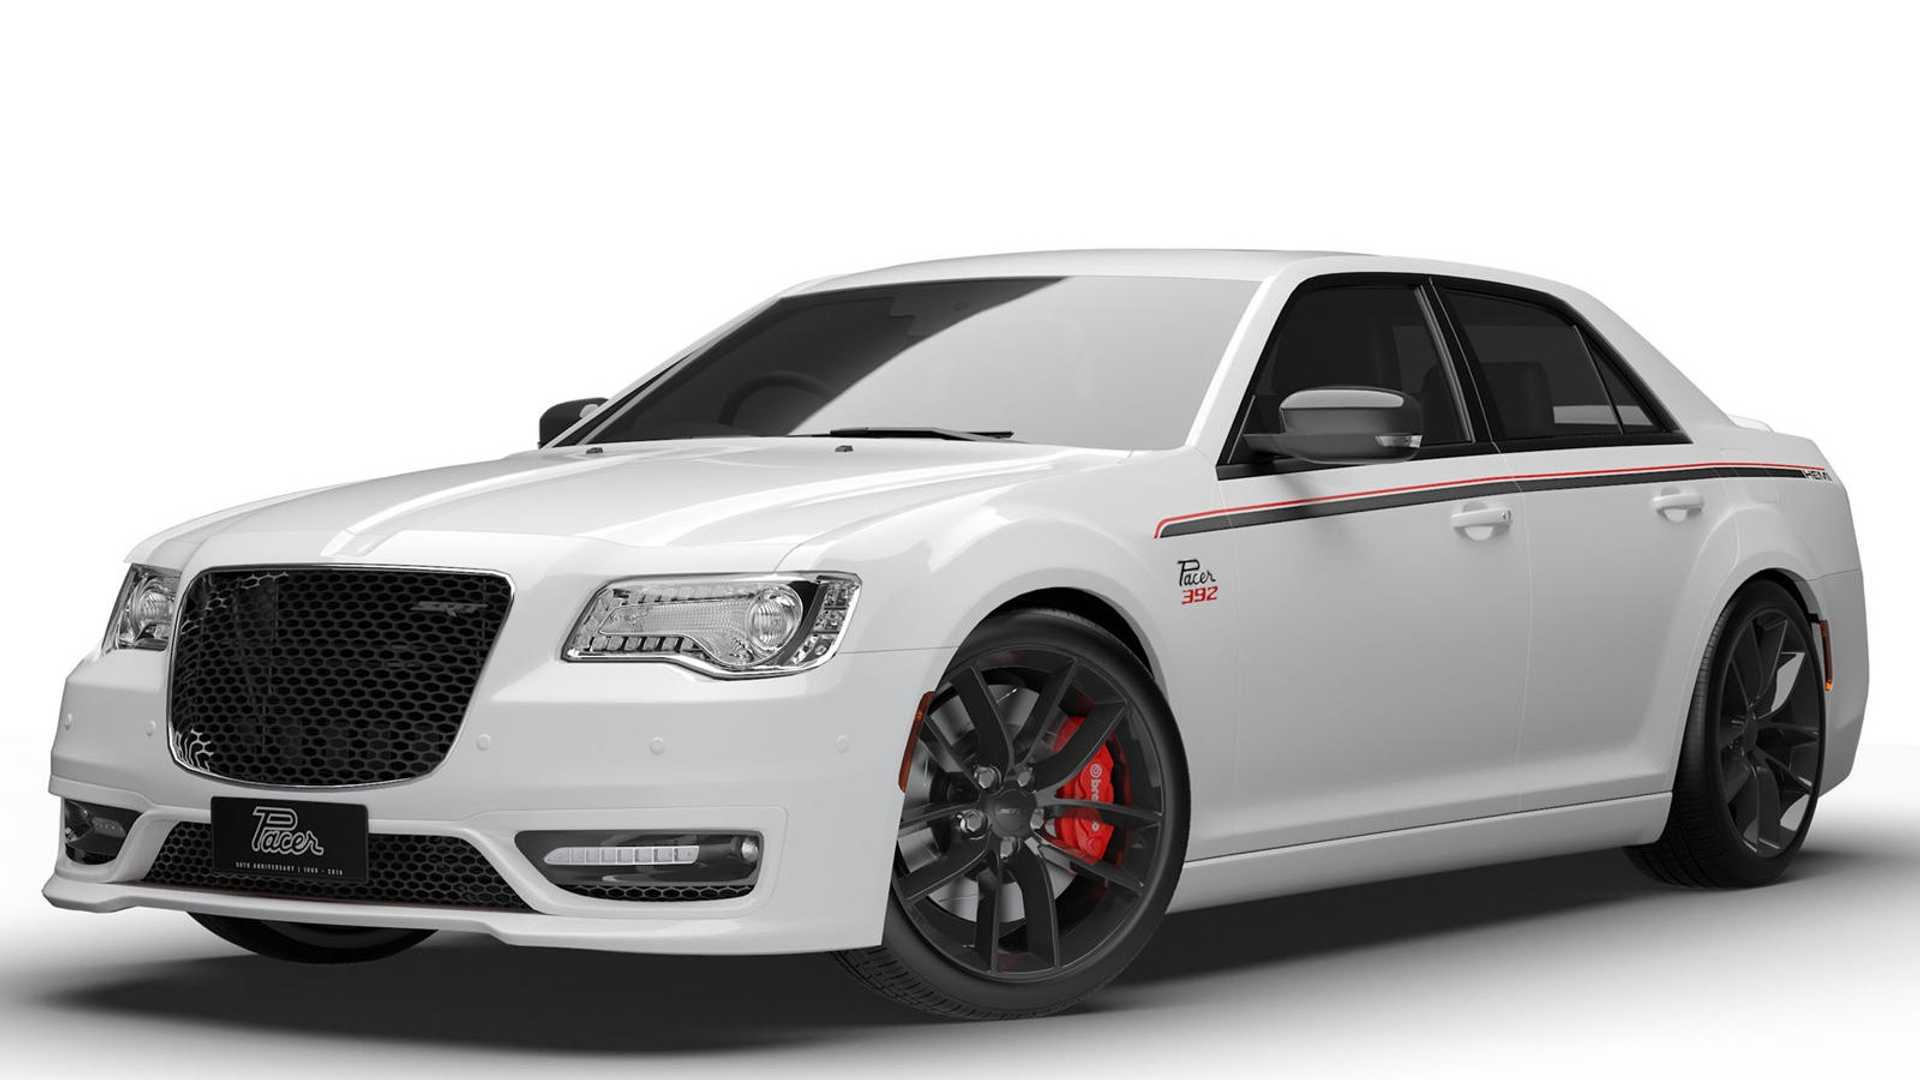 How Many Horsepower Is A 5.7 Hemi >> Treat Yourself To A New Chrysler 300 SRT | Motorious